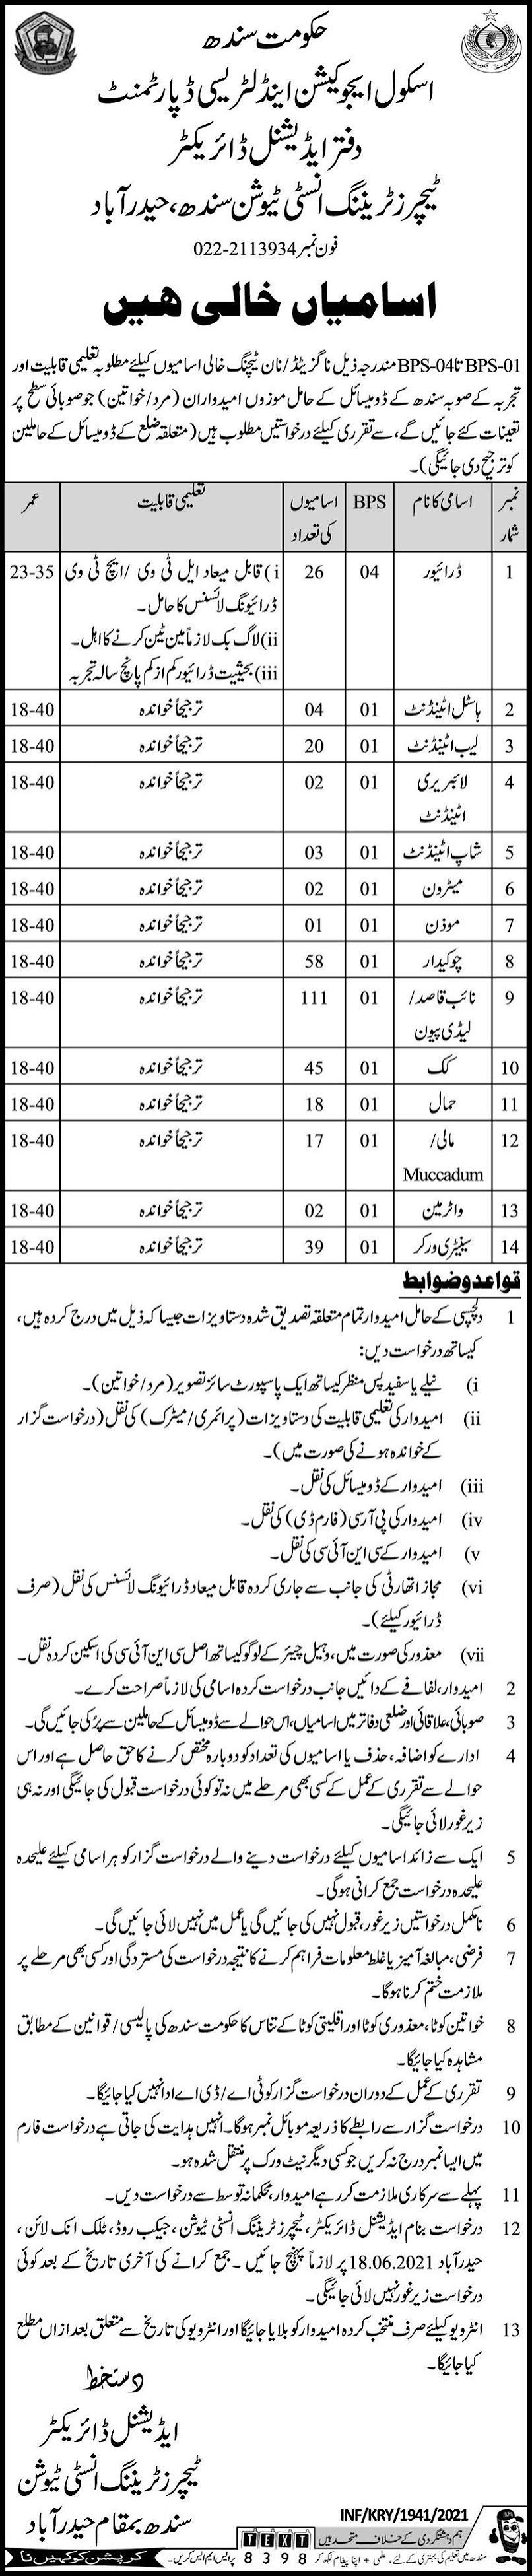 Teachers Training Institute Sindh School Education And Literacy Department Hyderabad Jobs 2021  330 Posts